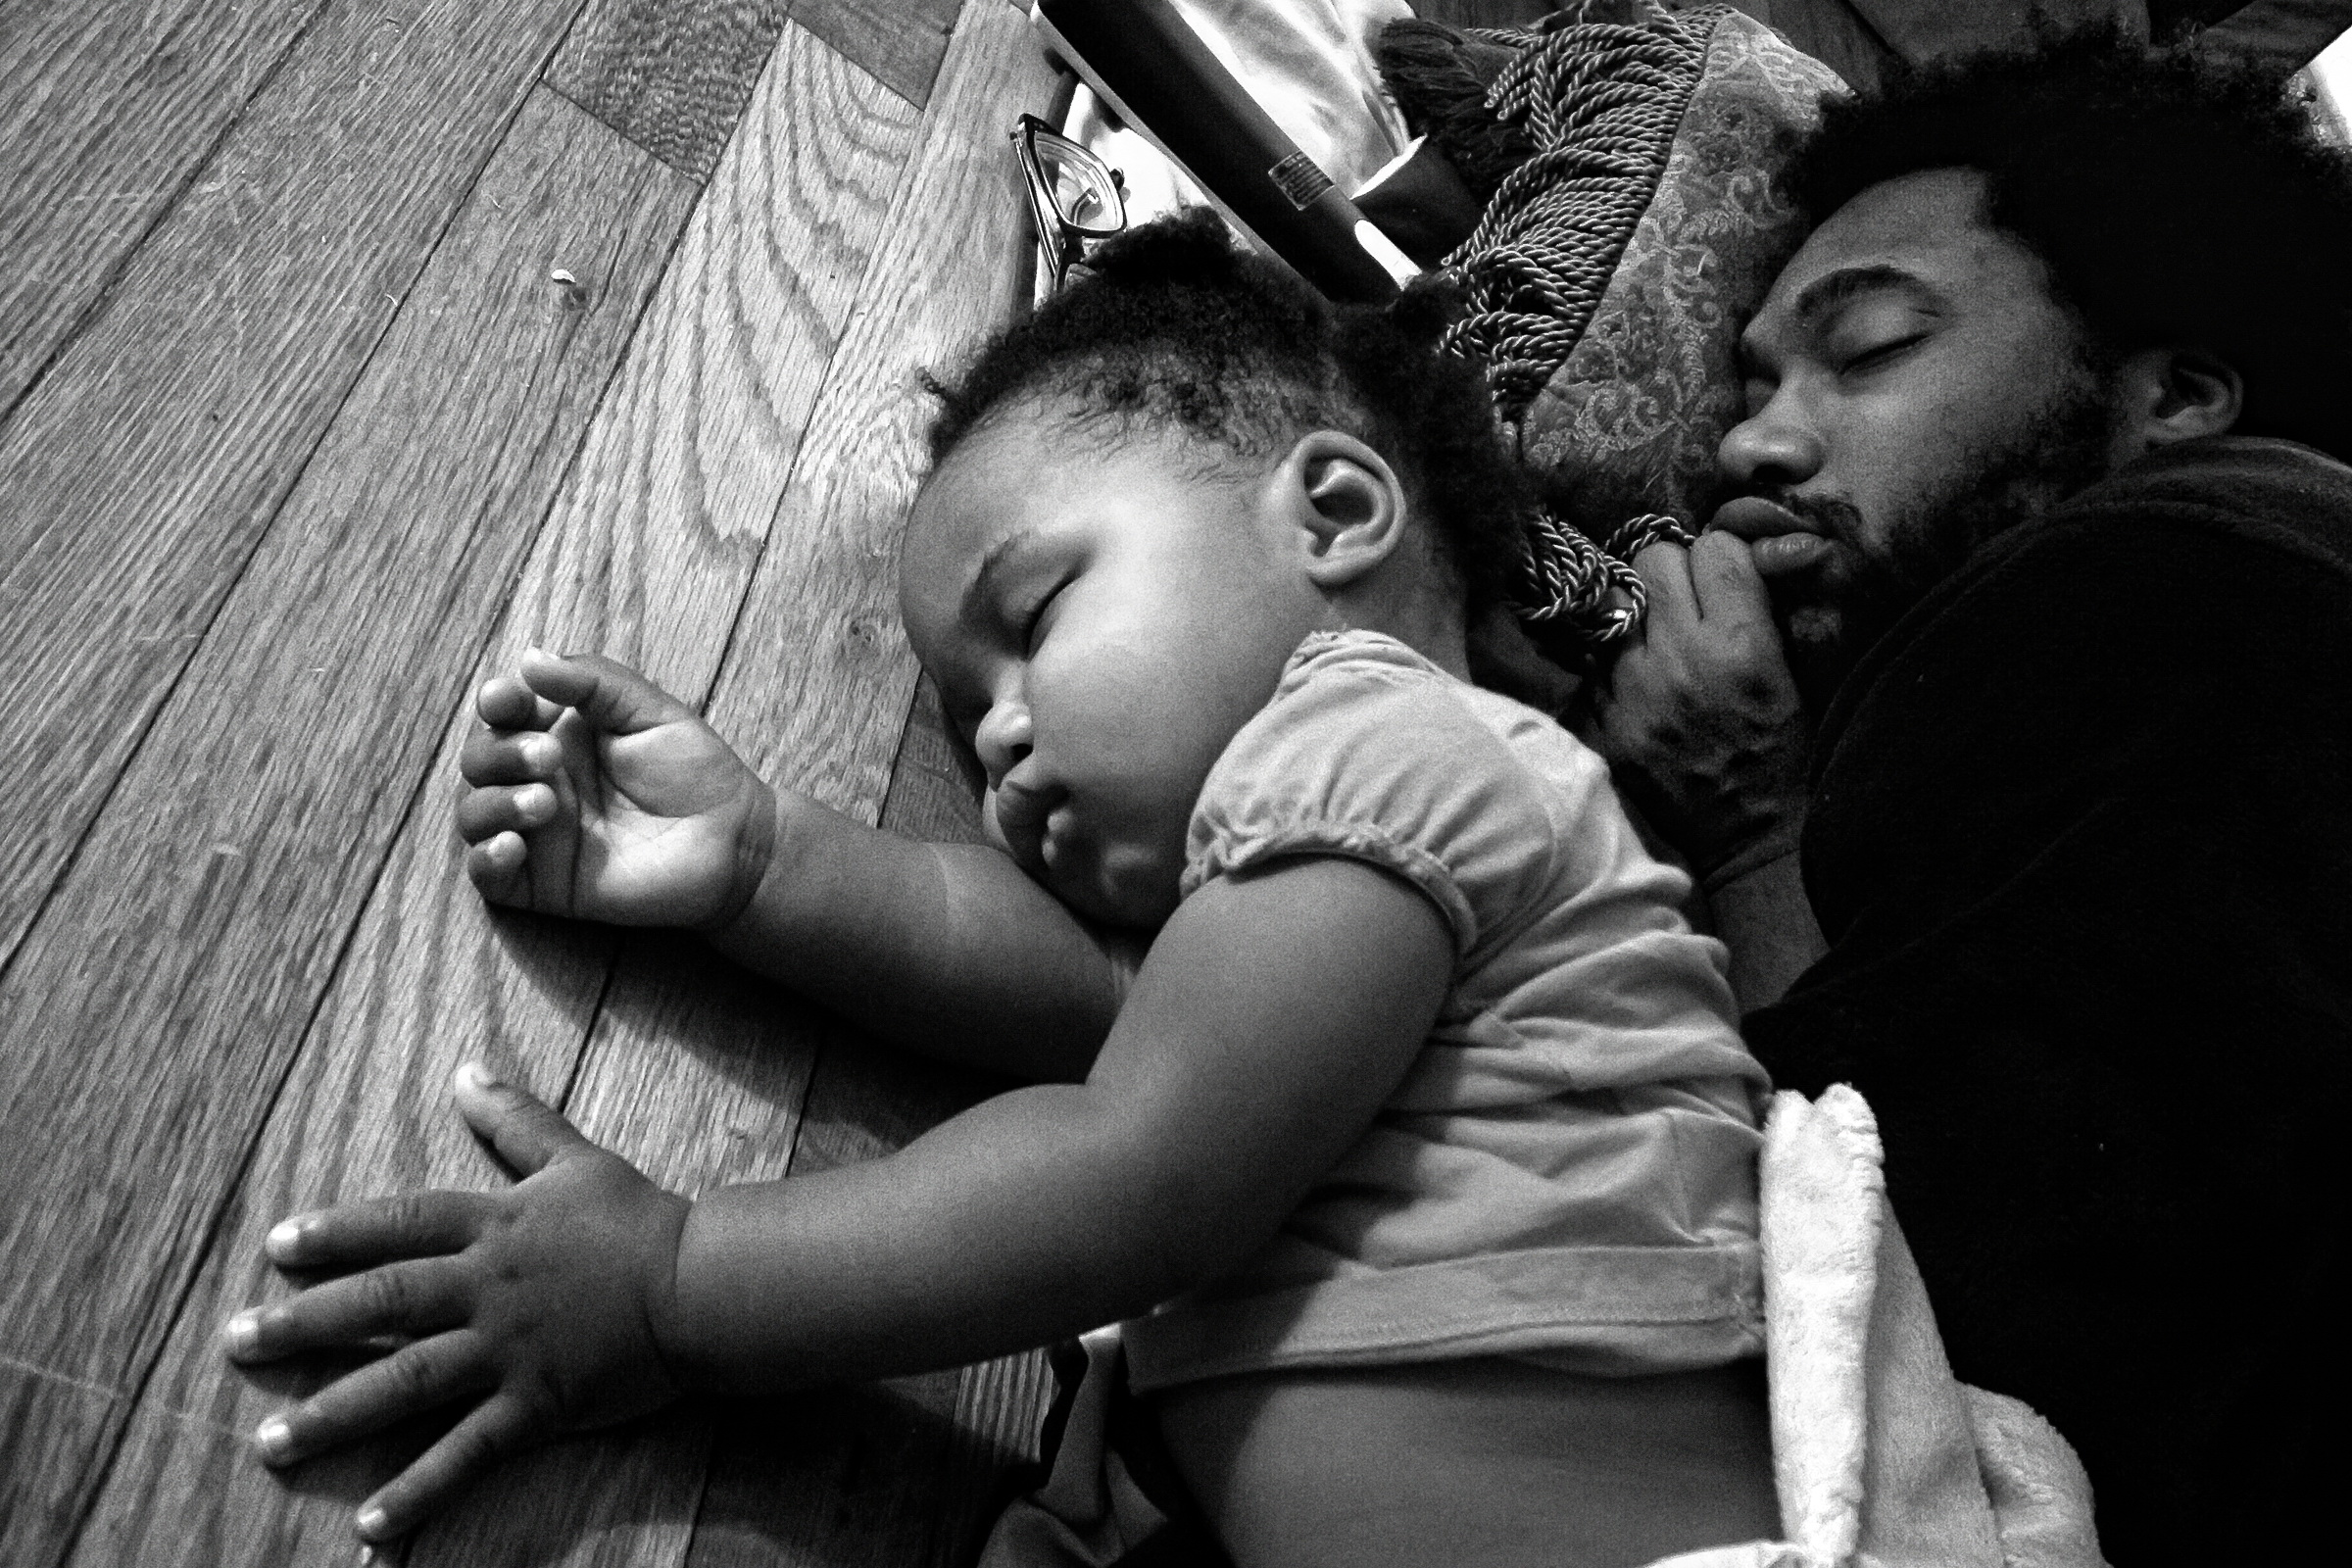 Anthony Francis falls asleep in front of the living room tv with his daughter Tena. Camp Lejeune, NC. 2012. © Zun Lee